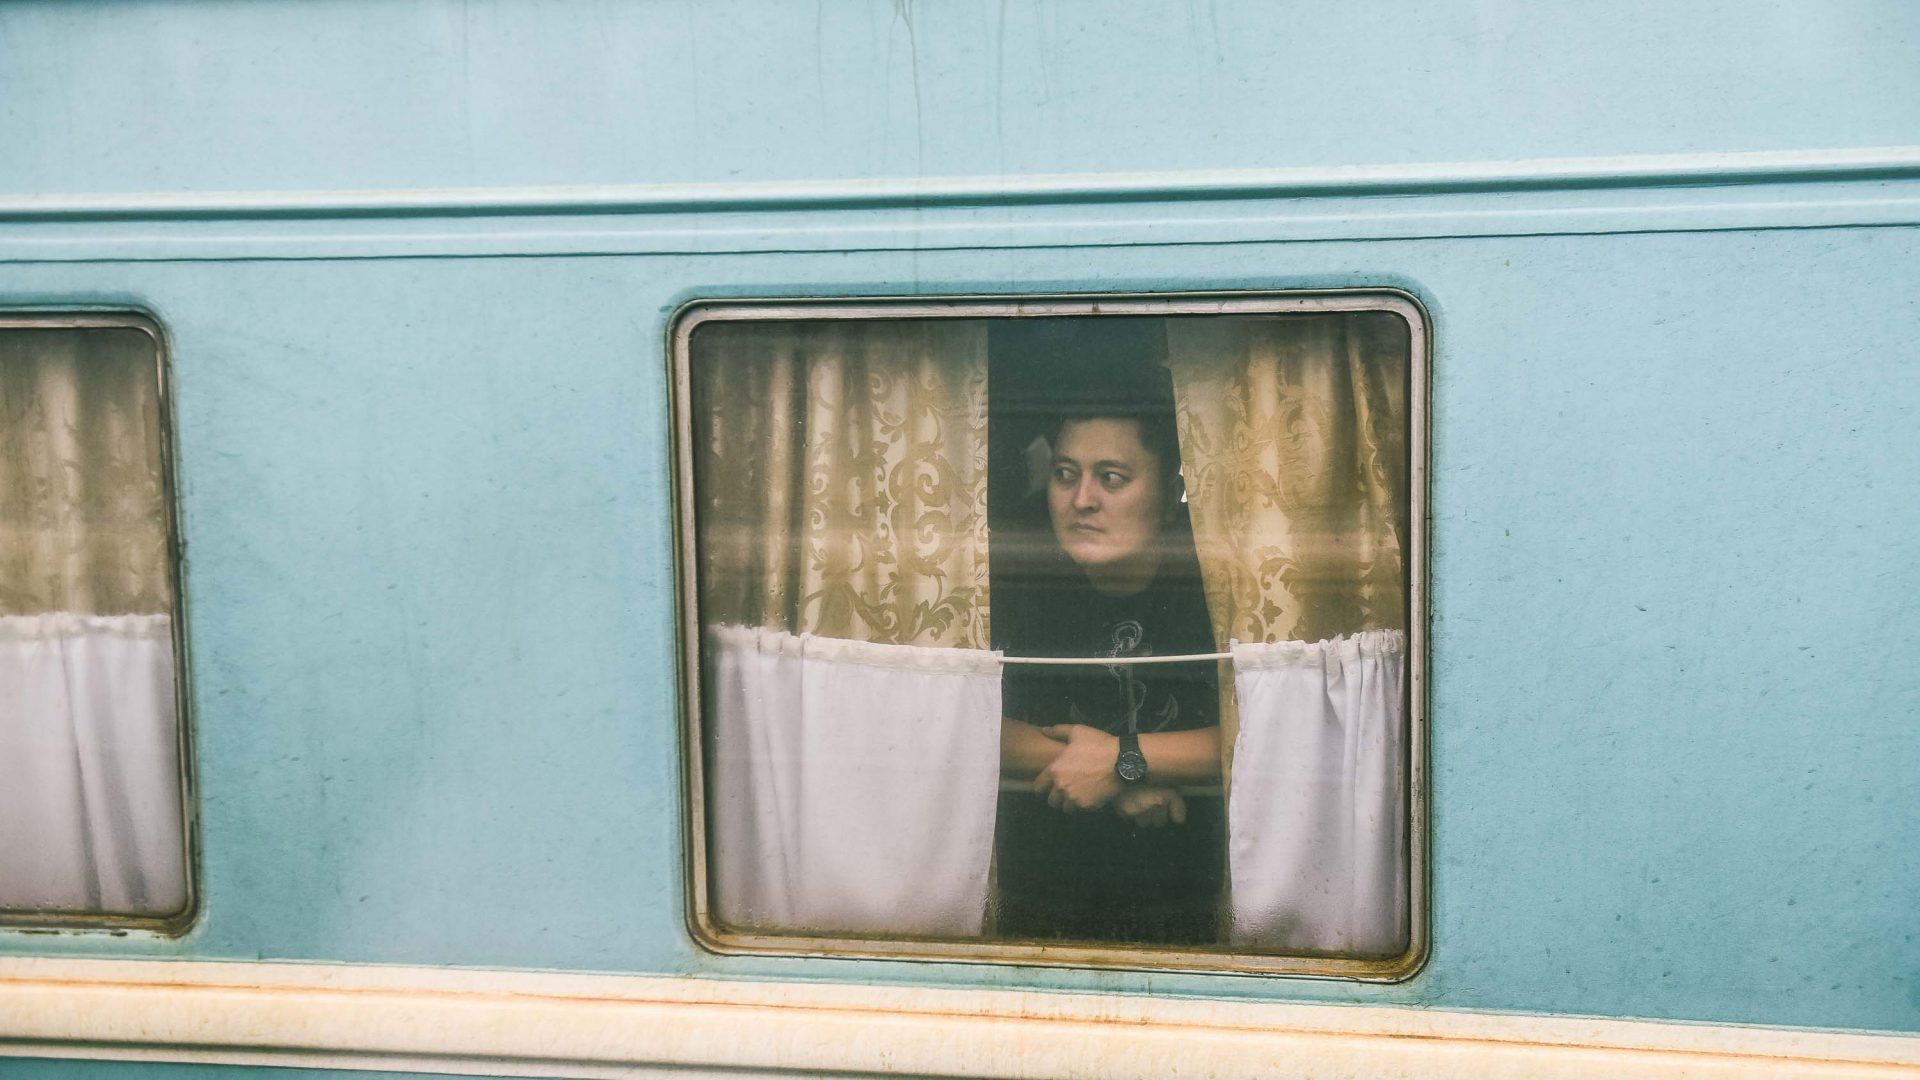 Writer Monisha Rajesh photographs a fellow passenger in Almaty, Kazakhstan.